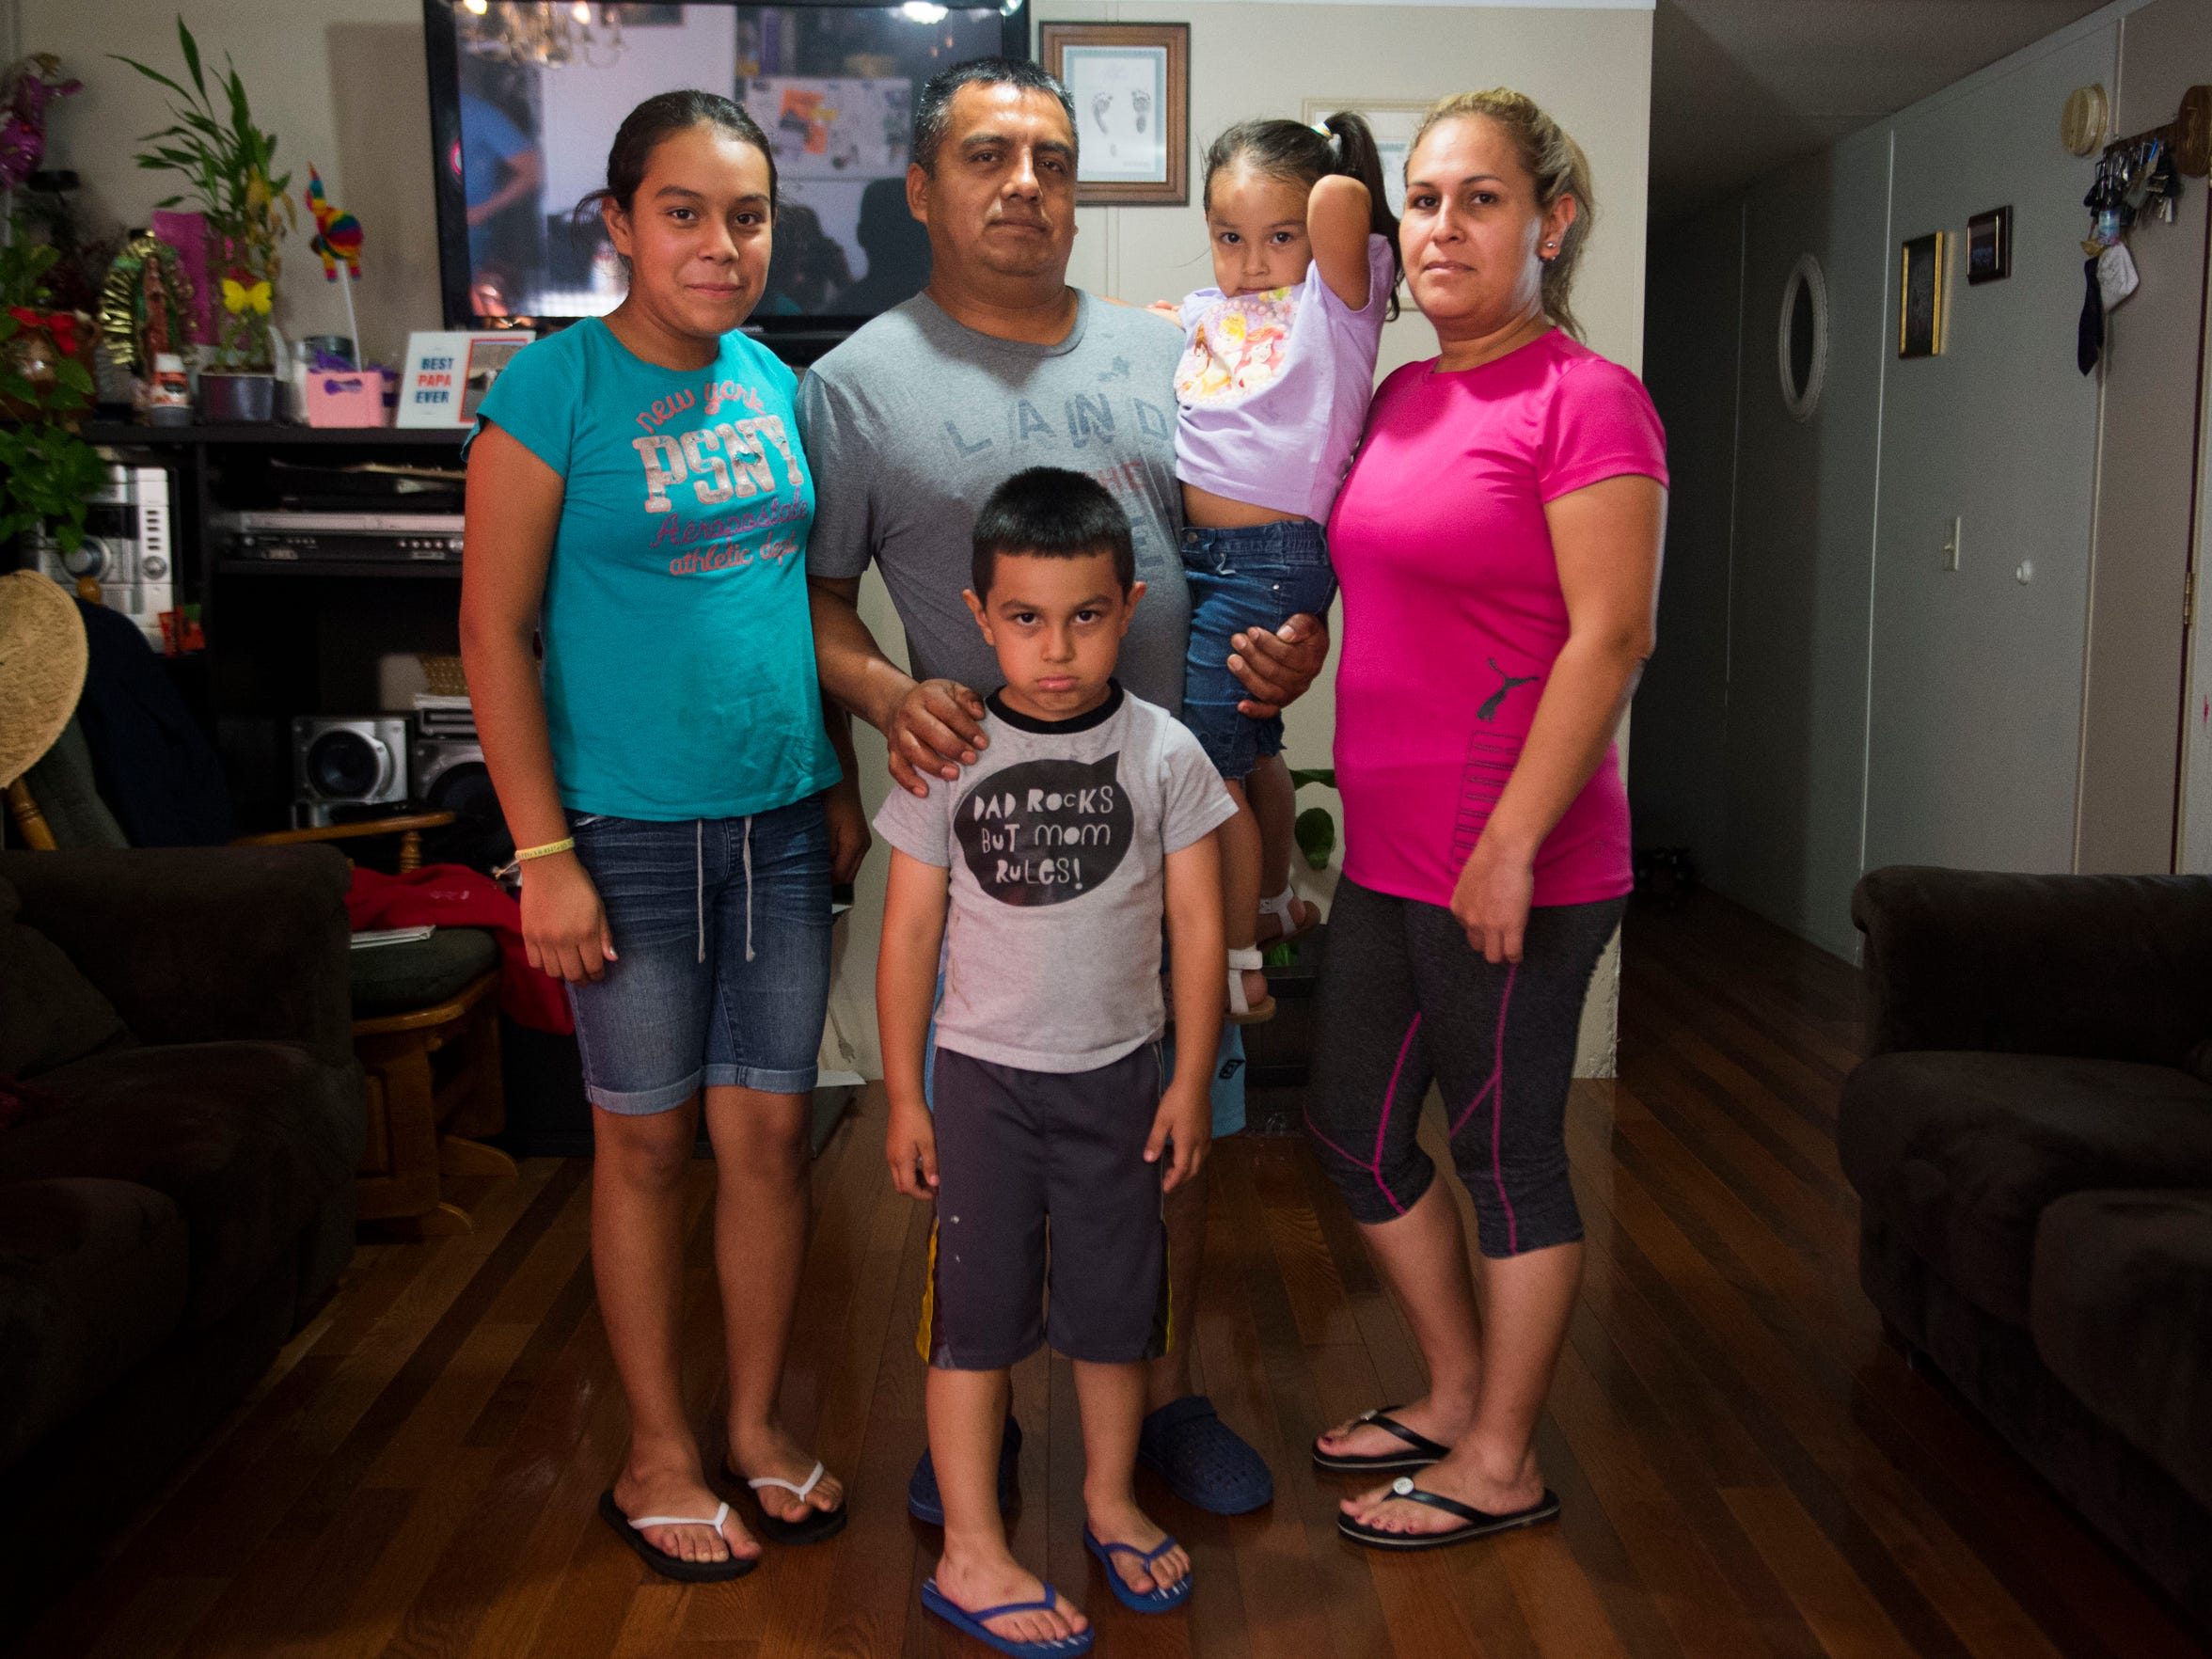 Alberto Librado, center, stands with his family from